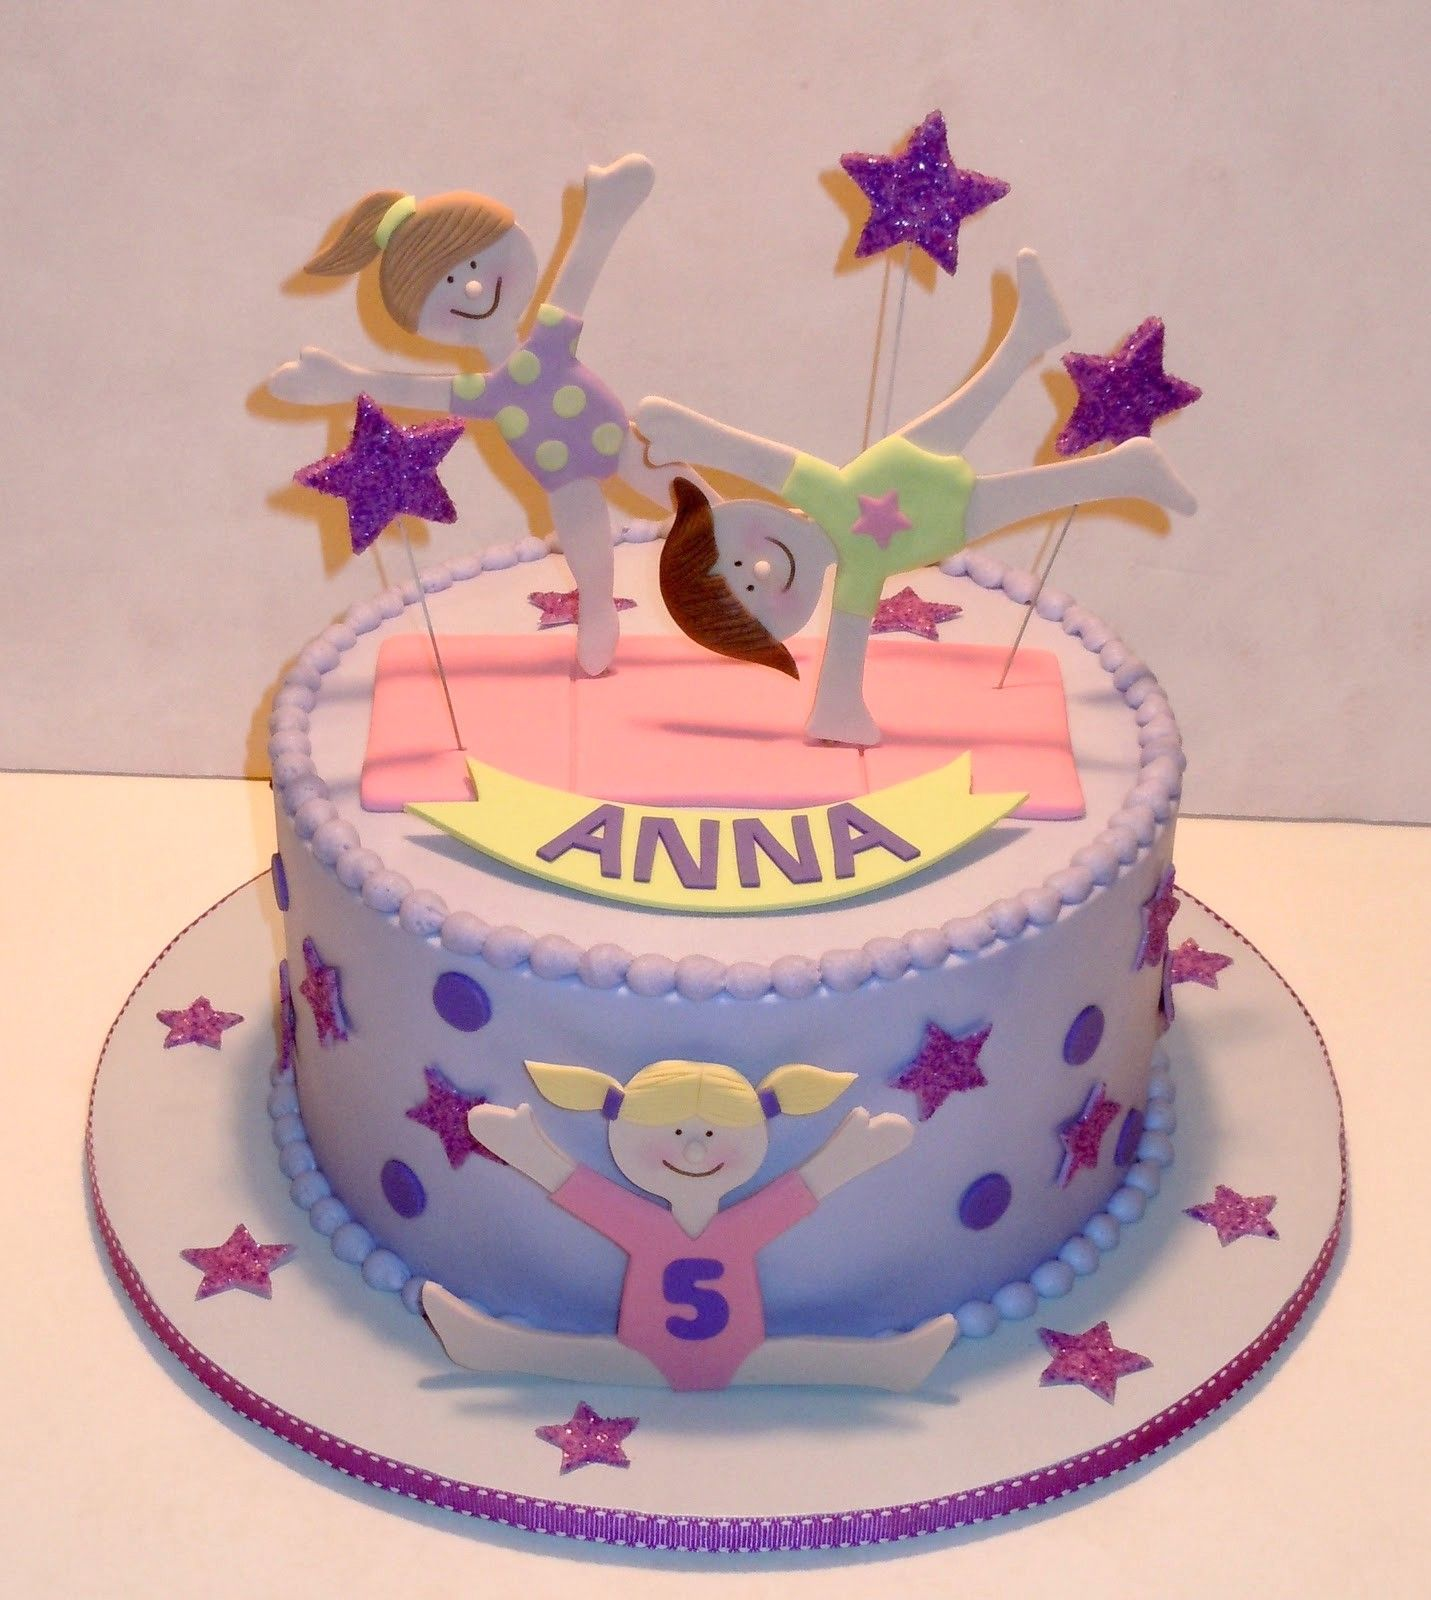 Fabulous Gymnastics Cake With Images Gymnastics Cakes Gymnast Birthday Personalised Birthday Cards Paralily Jamesorg